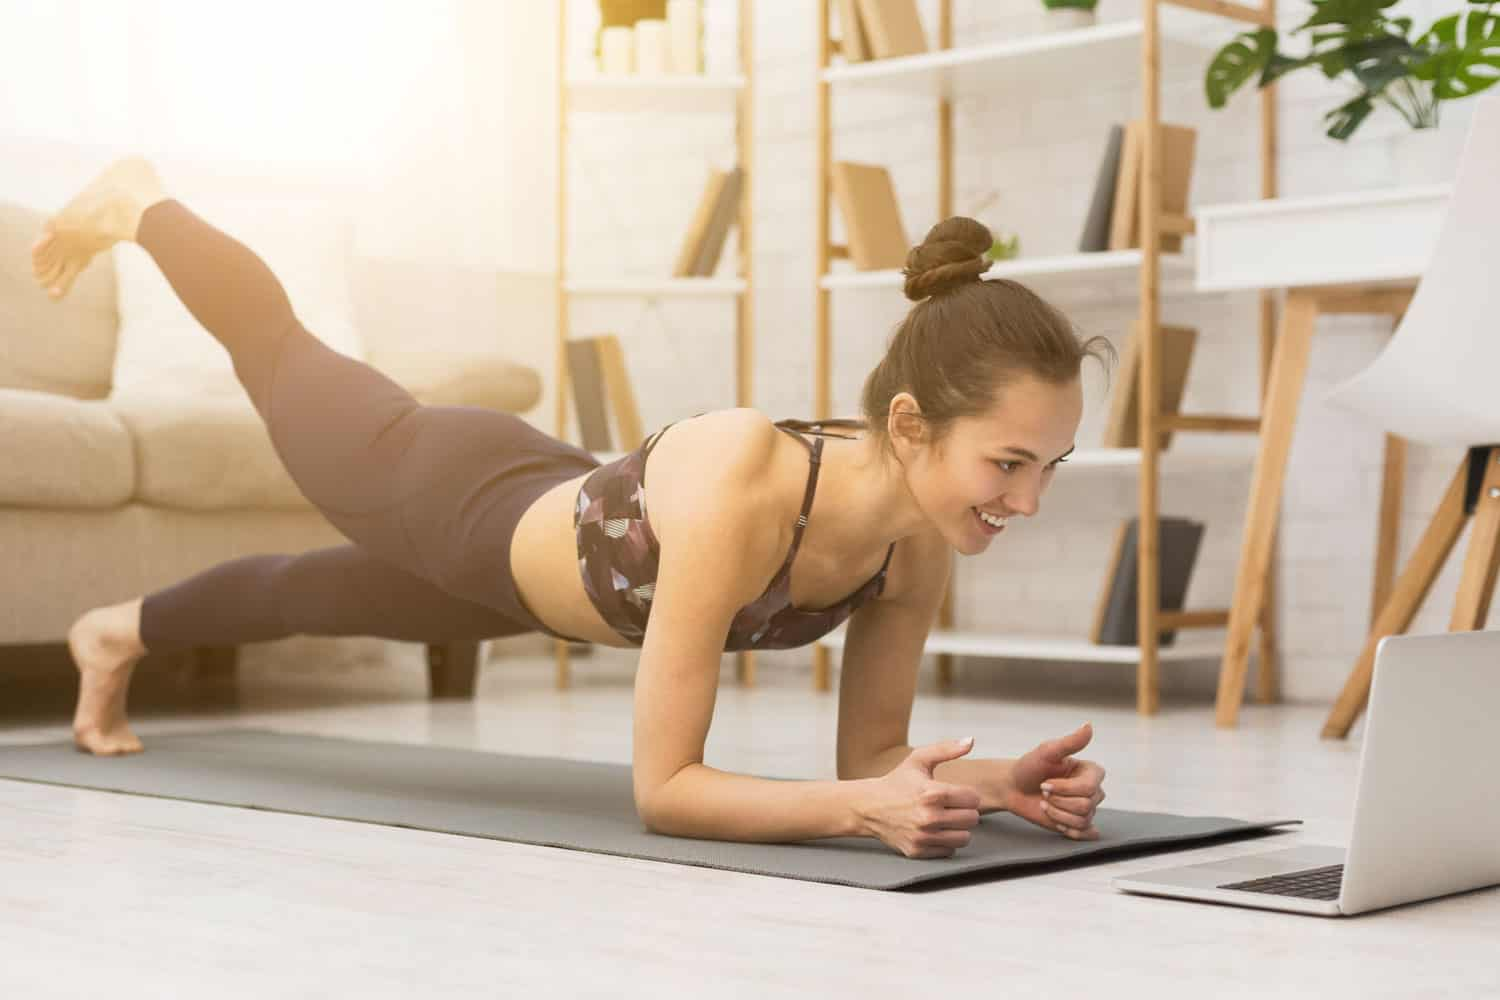 A woman doing planking on her yoga mat while watching a tutorial on her laptop